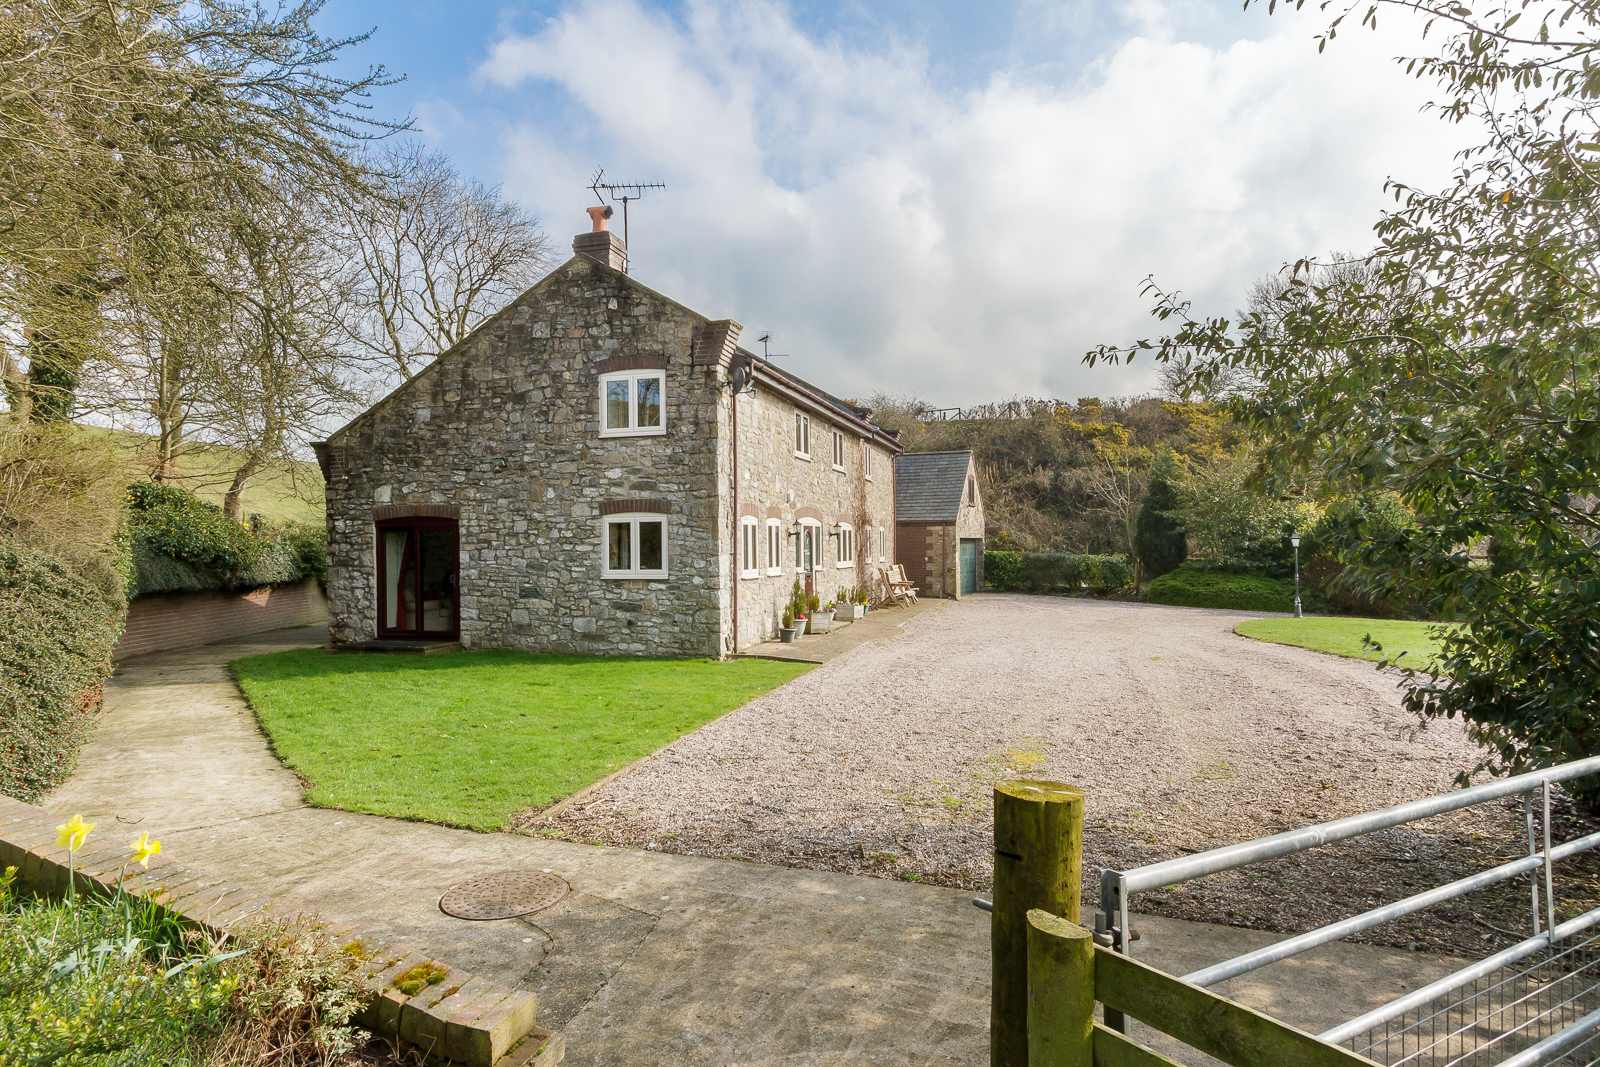 Farmhouse For Sale Wales 5 Bedroom Farm House For Sale In North Wales